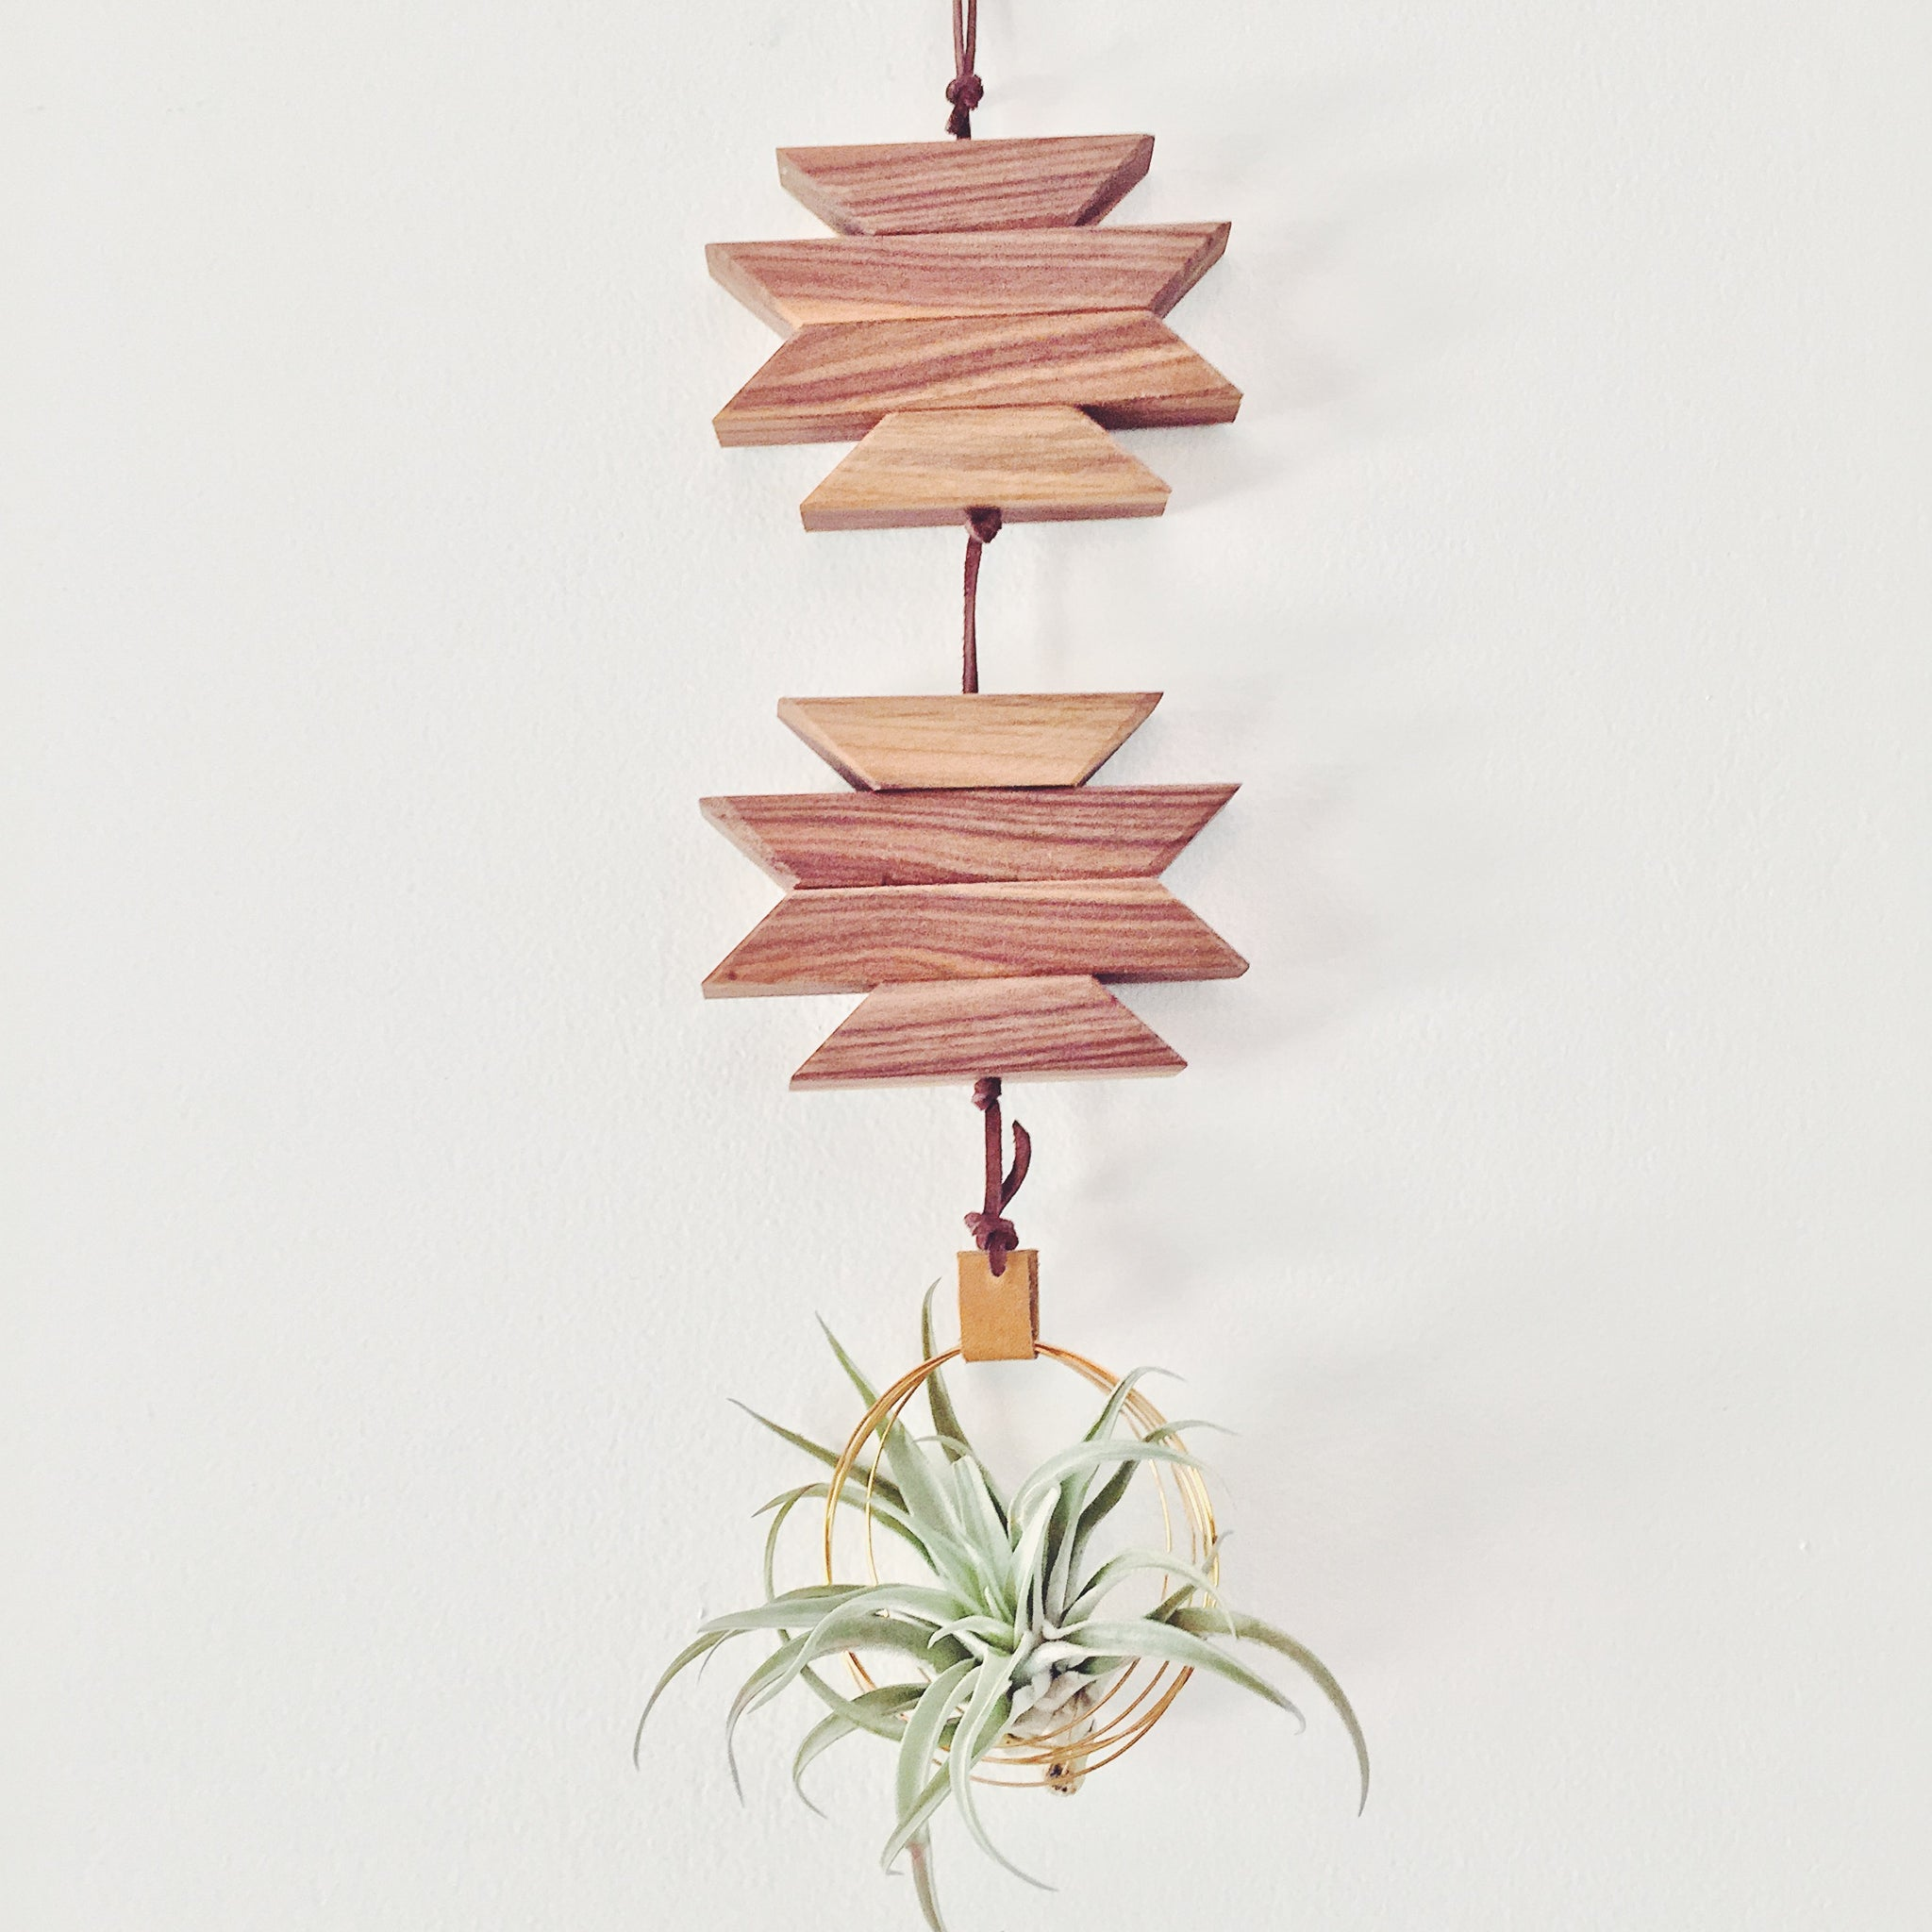 Modern Southwest Air Plant Wall Hanging no.7